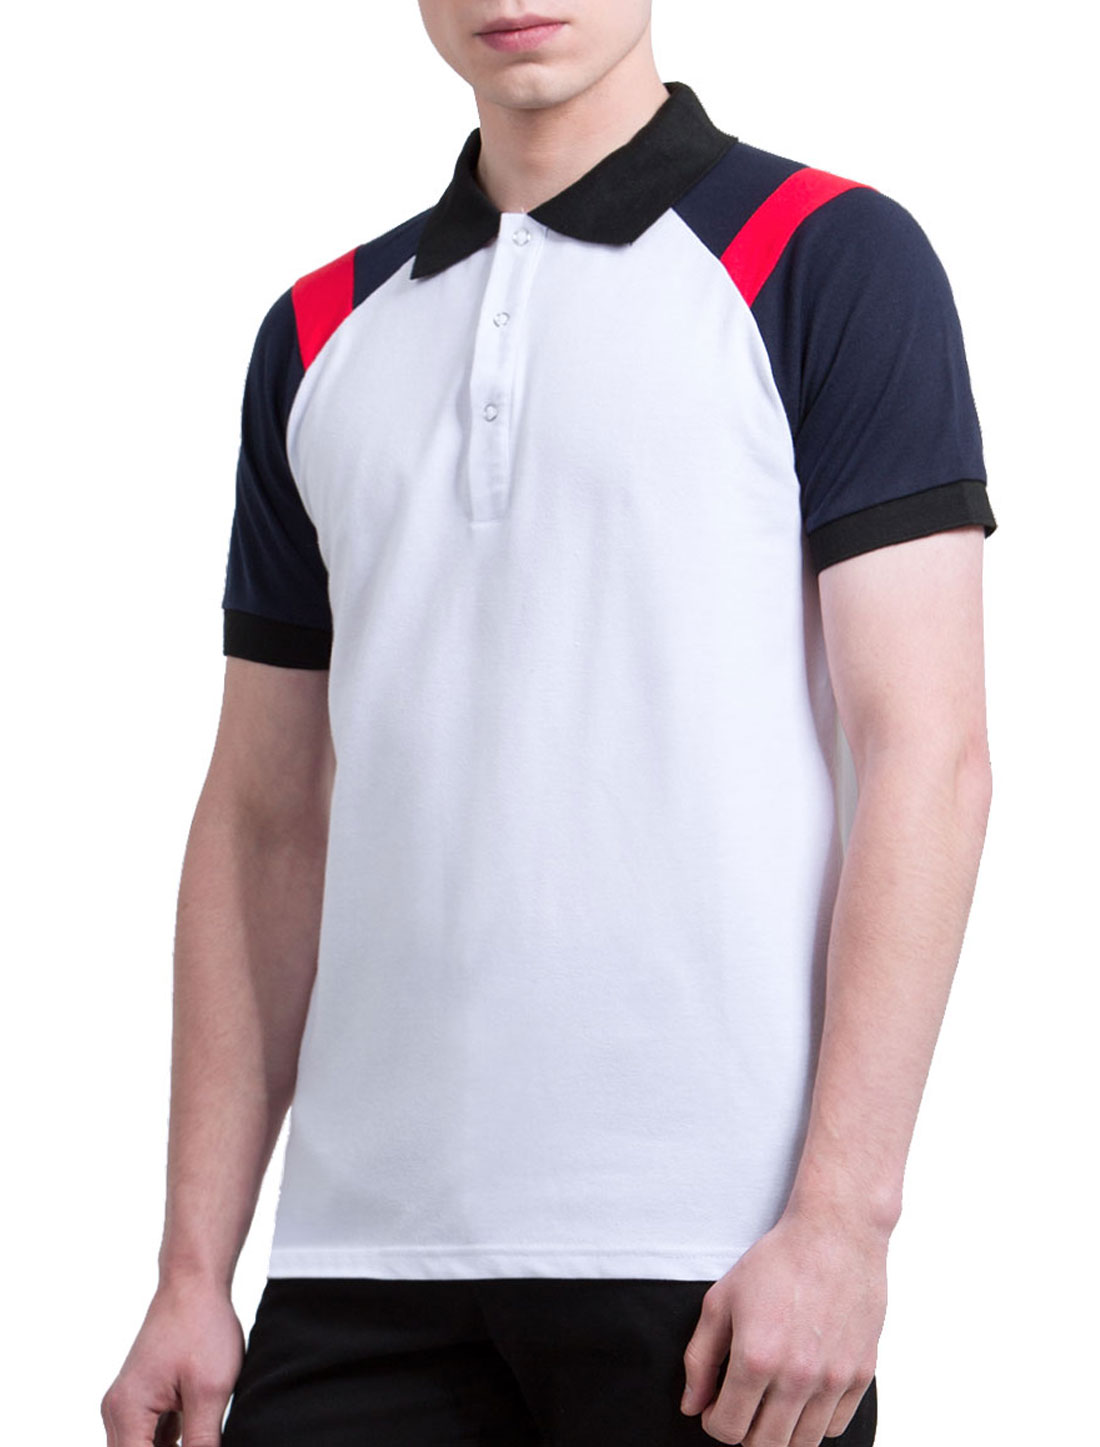 Men Contrast Color Short Raglan Sleeves Polo Shirt White M